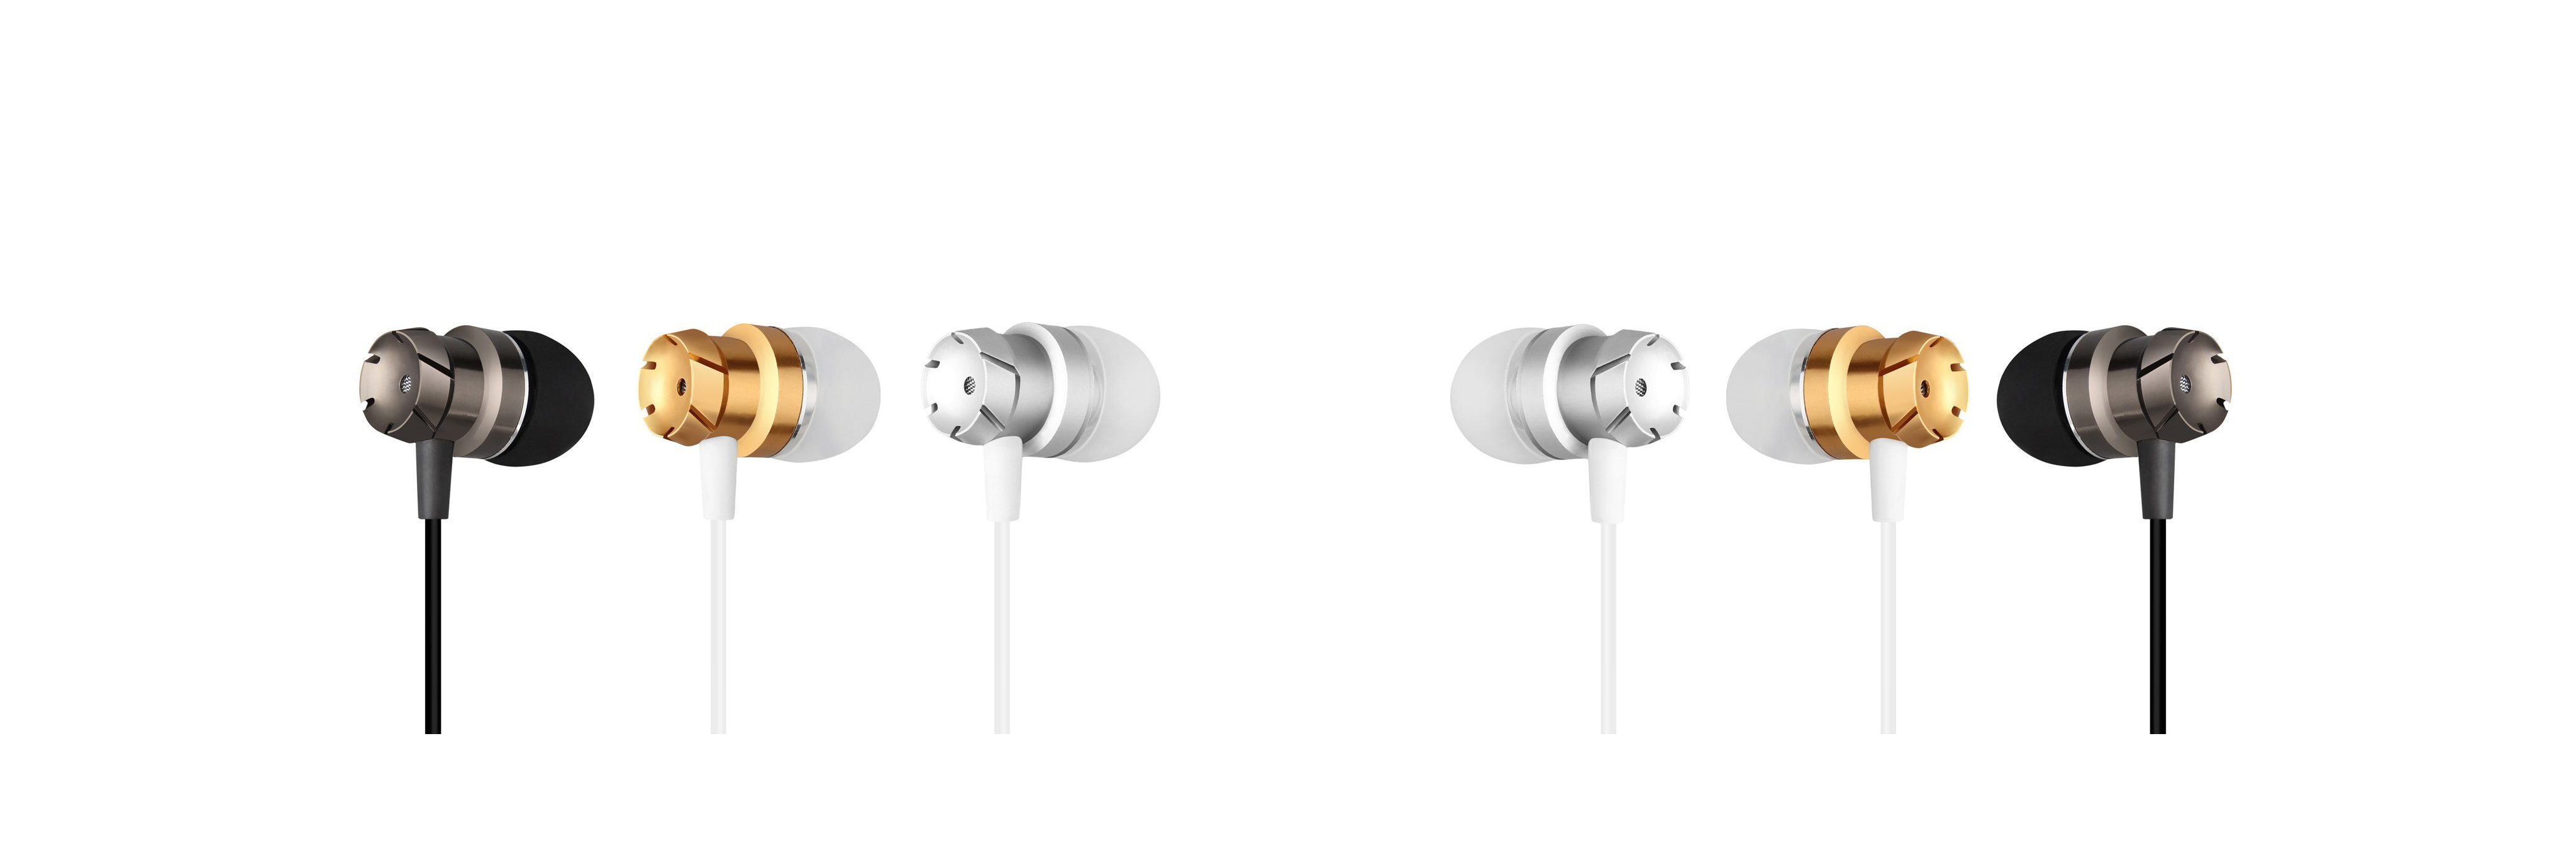 SOS1 Noise Cancelling Earphones